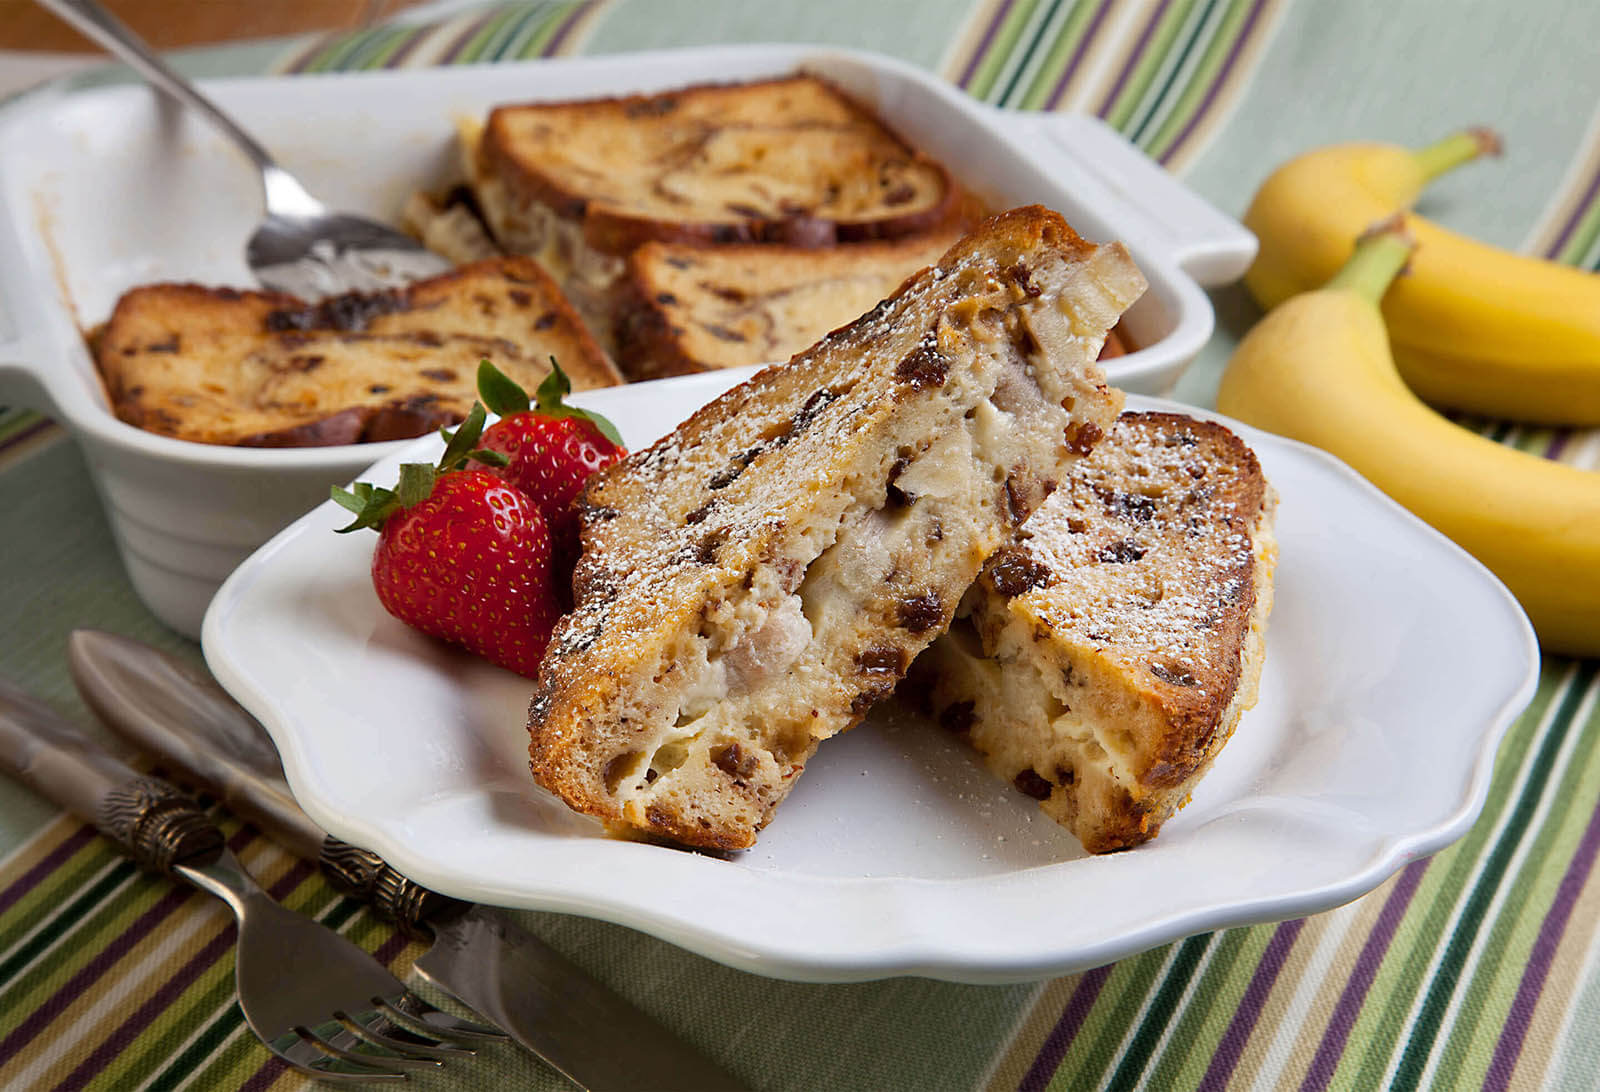 Banana Raisin French Toast